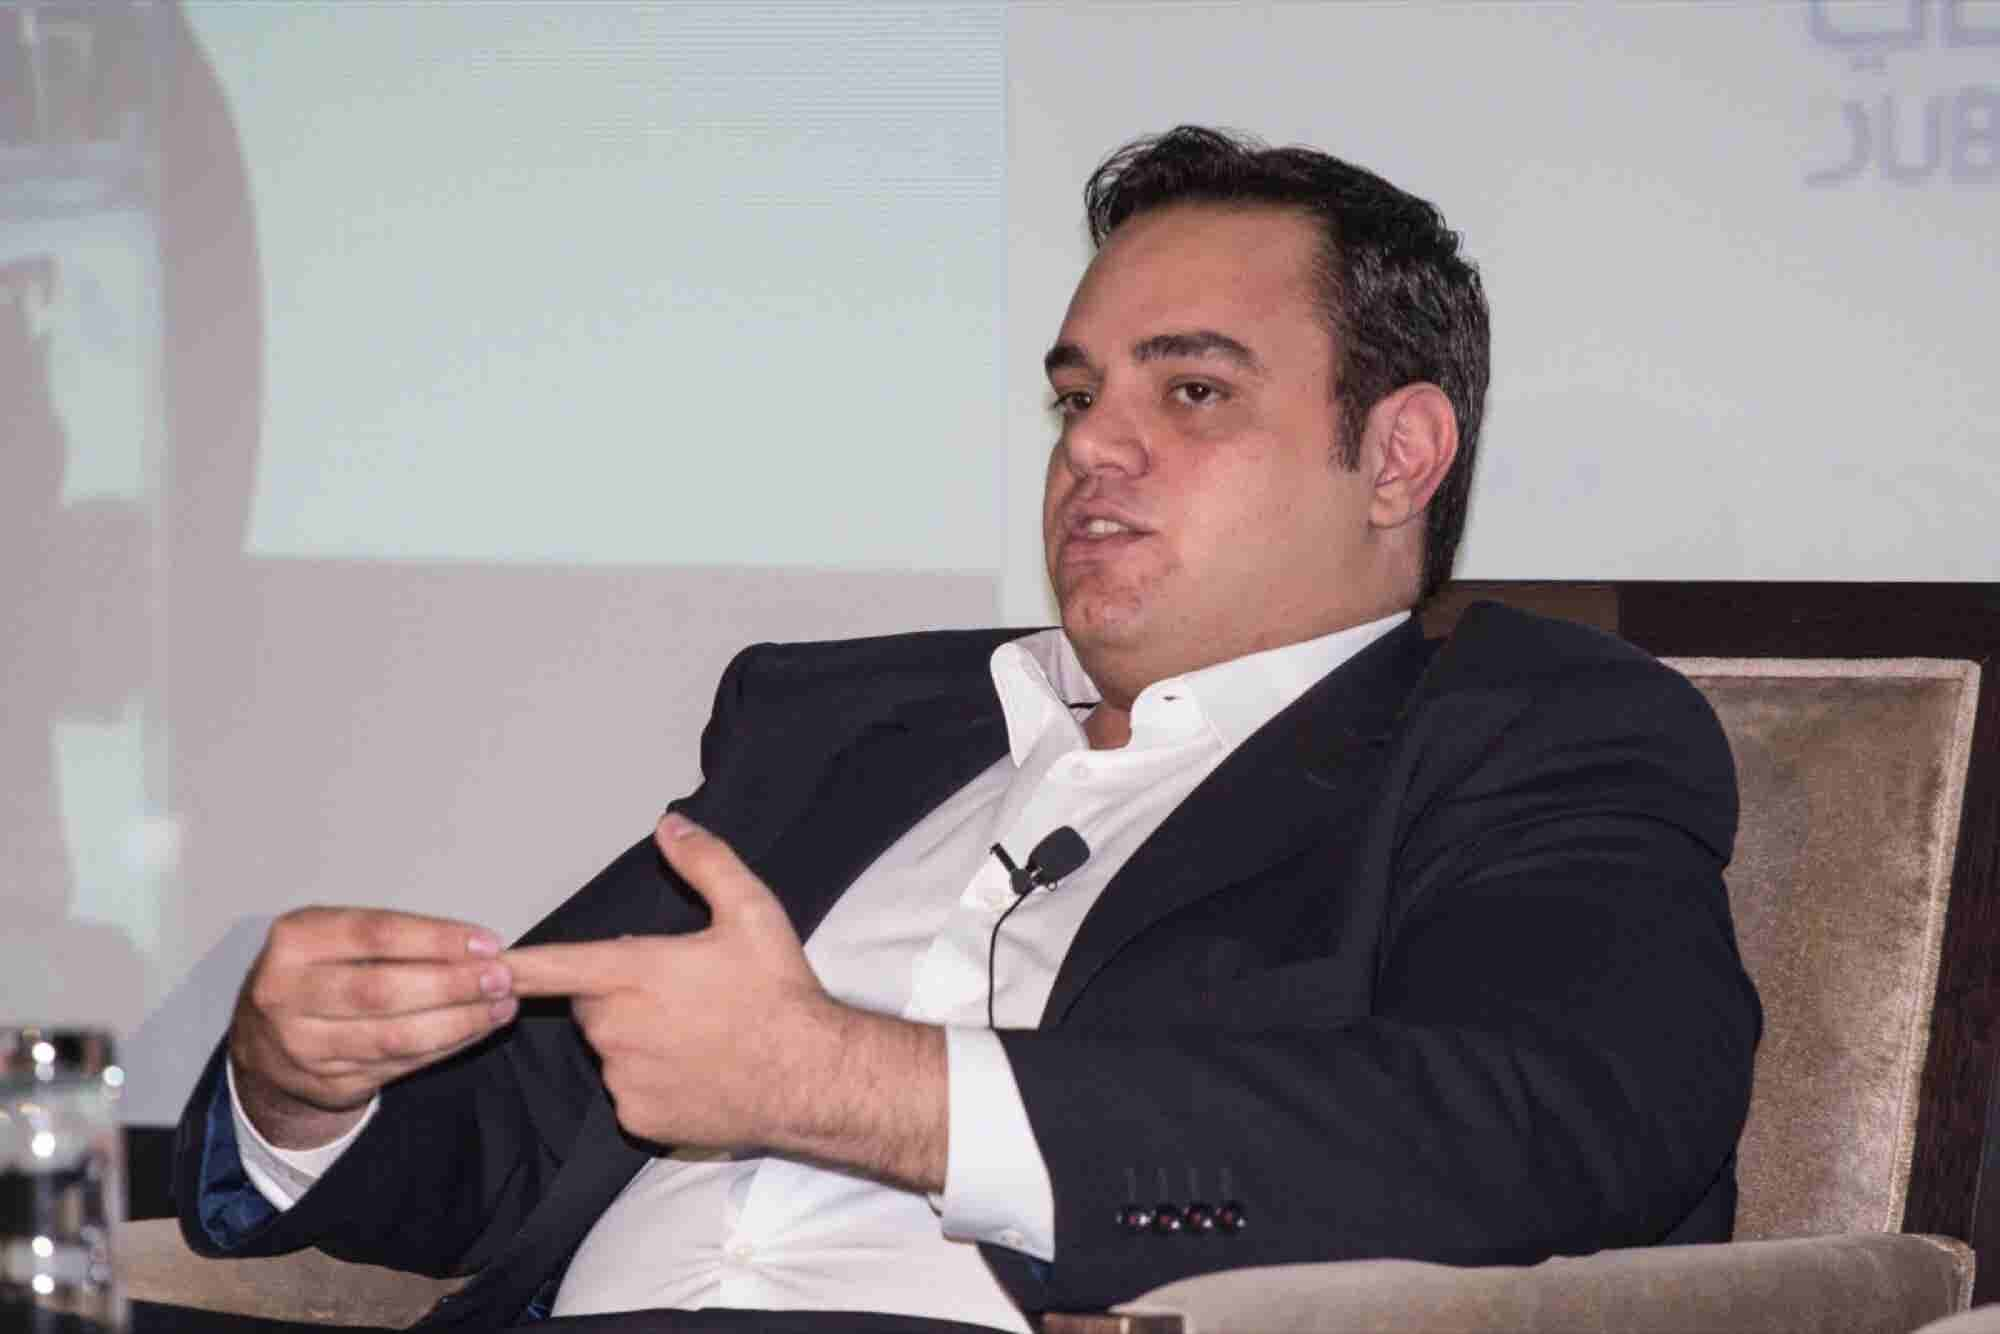 Flat6Labs CEO Ramez M. El-Serafy On The Biggest Red Flags He Has Seen...